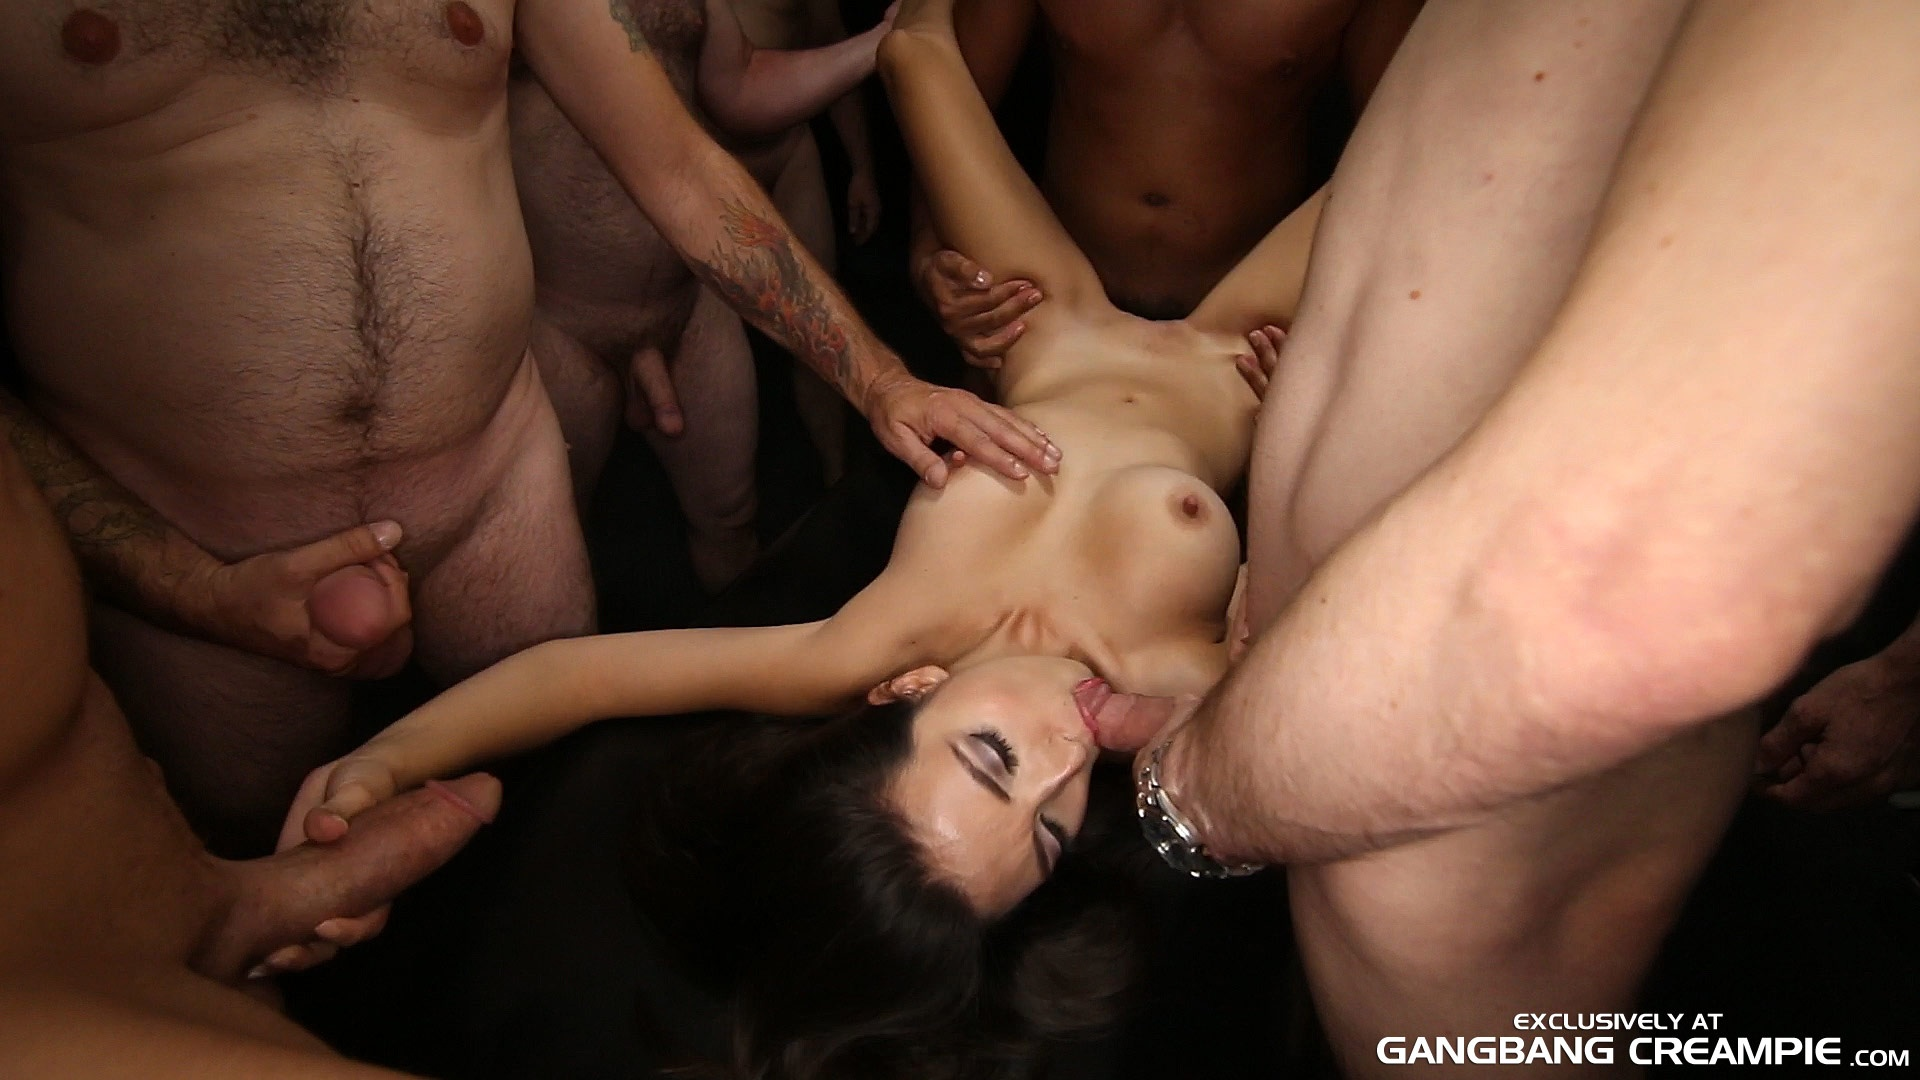 Porn gang bang join. was